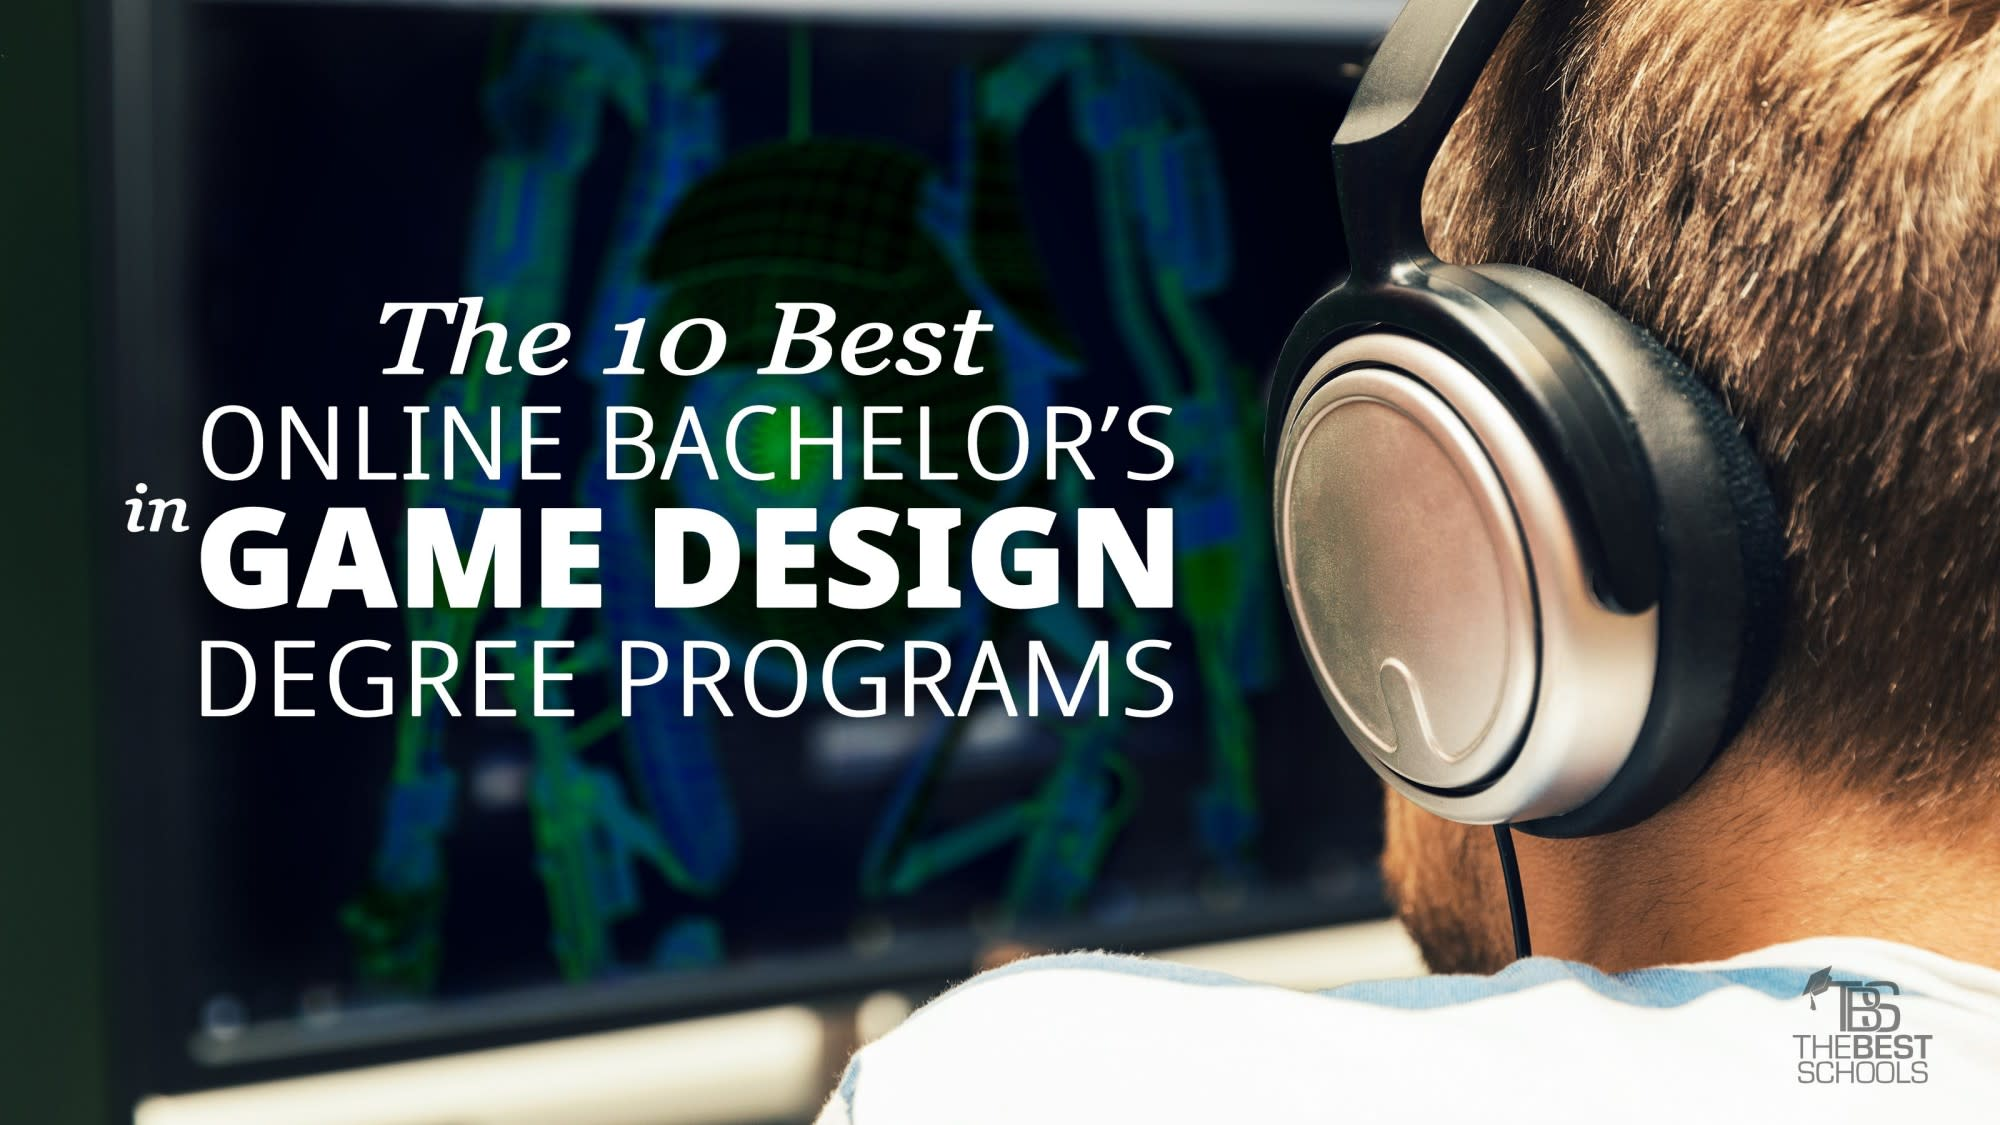 The 10 Best Online Bachelor's in Video Game Design Degree